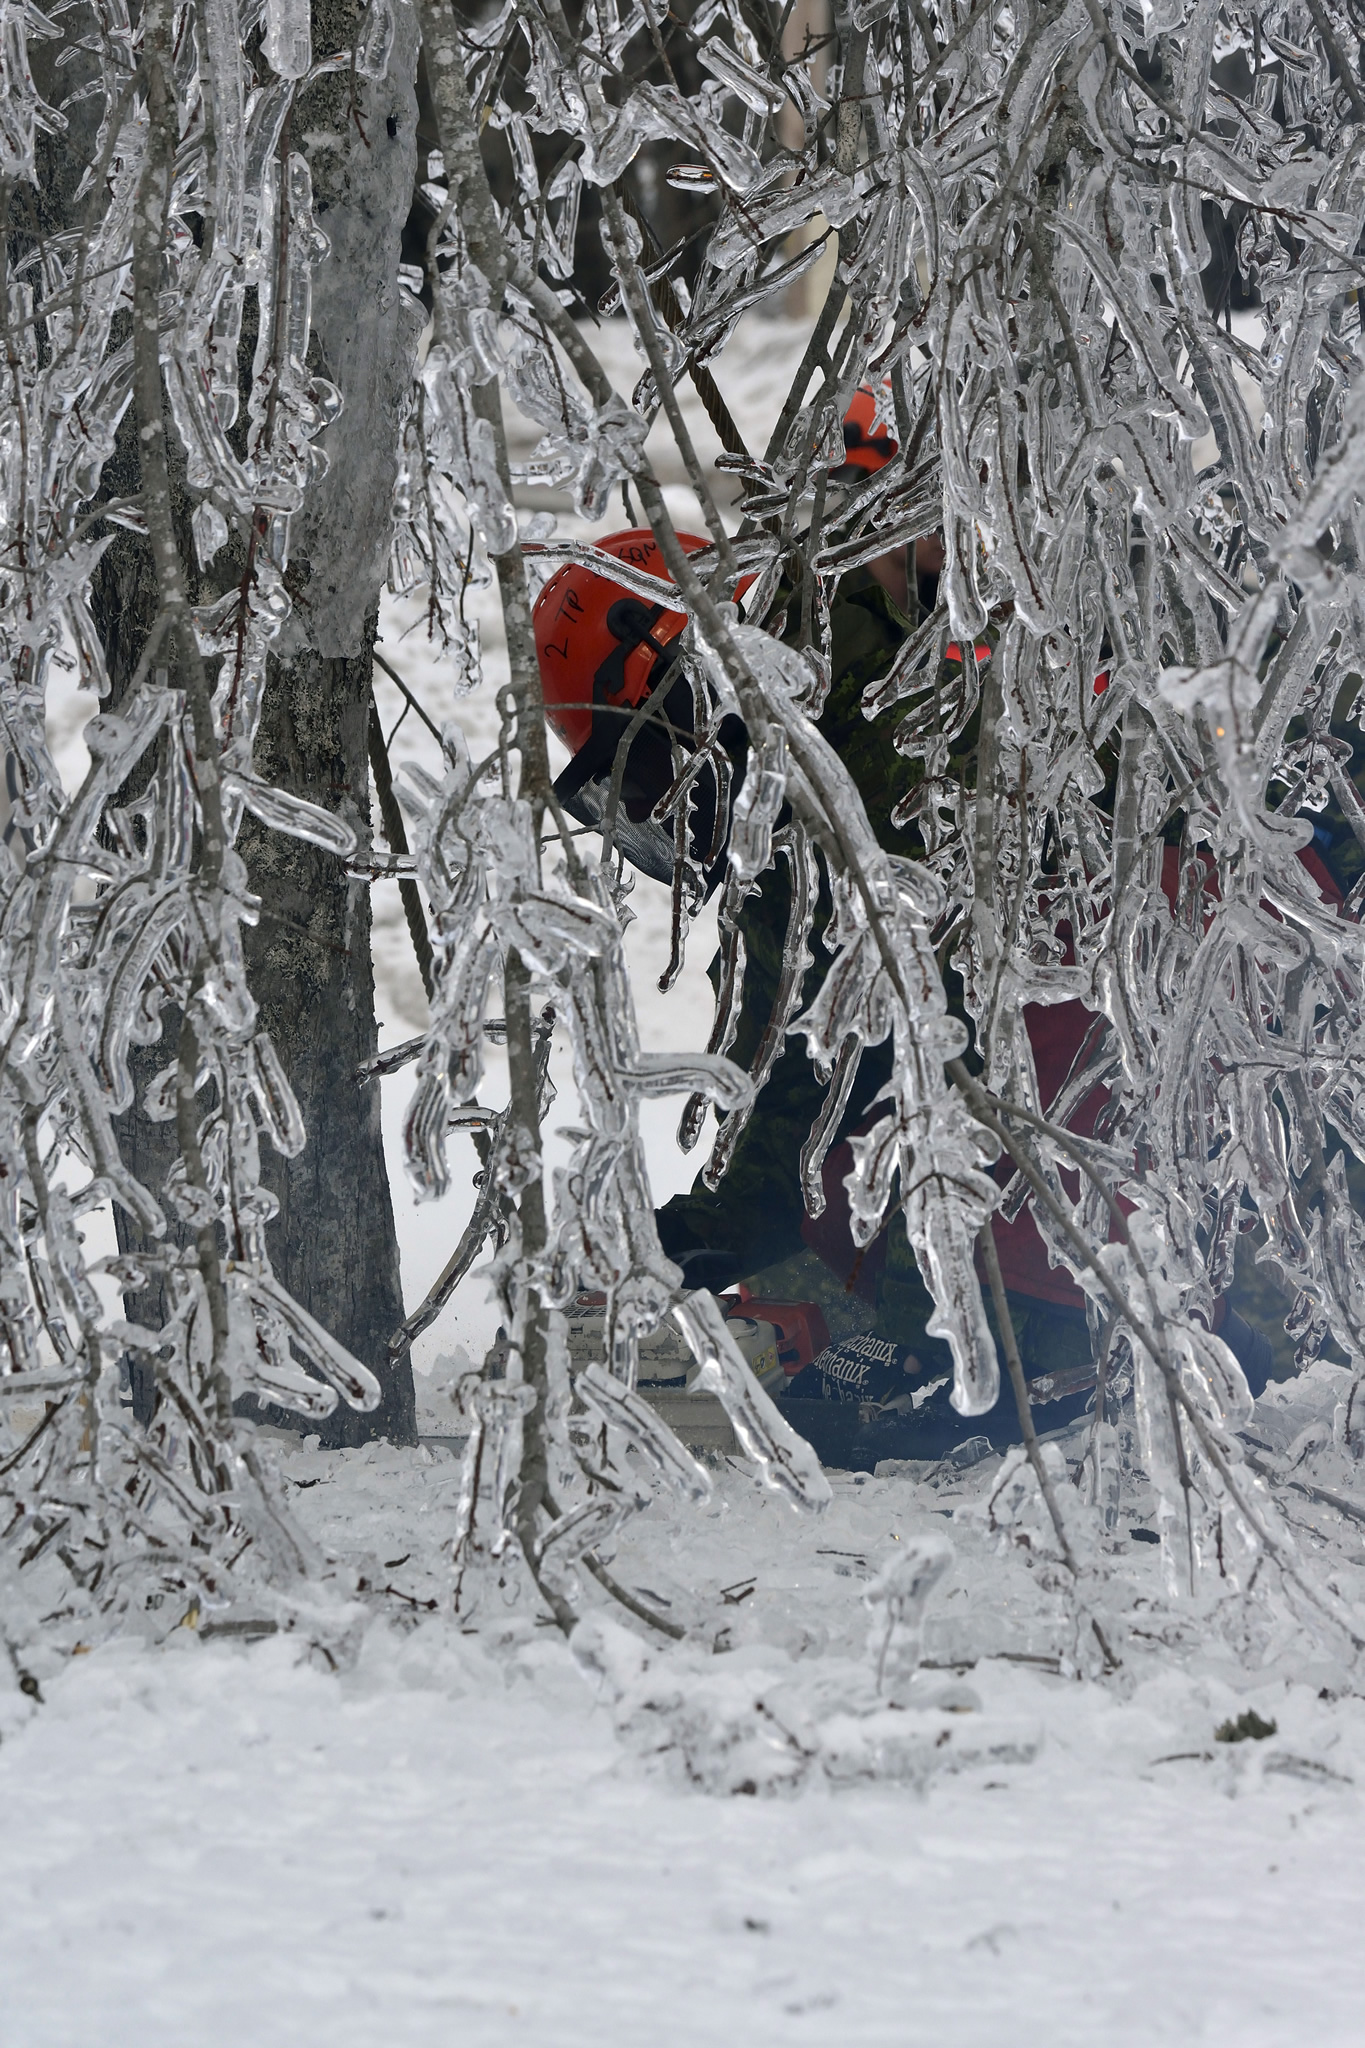 Members of 4th Artillery Regiment (General Support) remove fallen tree branches and damaged trees during Operation LENTUS in the Acadian Peninsula of New Brunswick on January 31, 2017. (Photo: WO Jerry Kean, 5 Canadian Division Public Affairs)